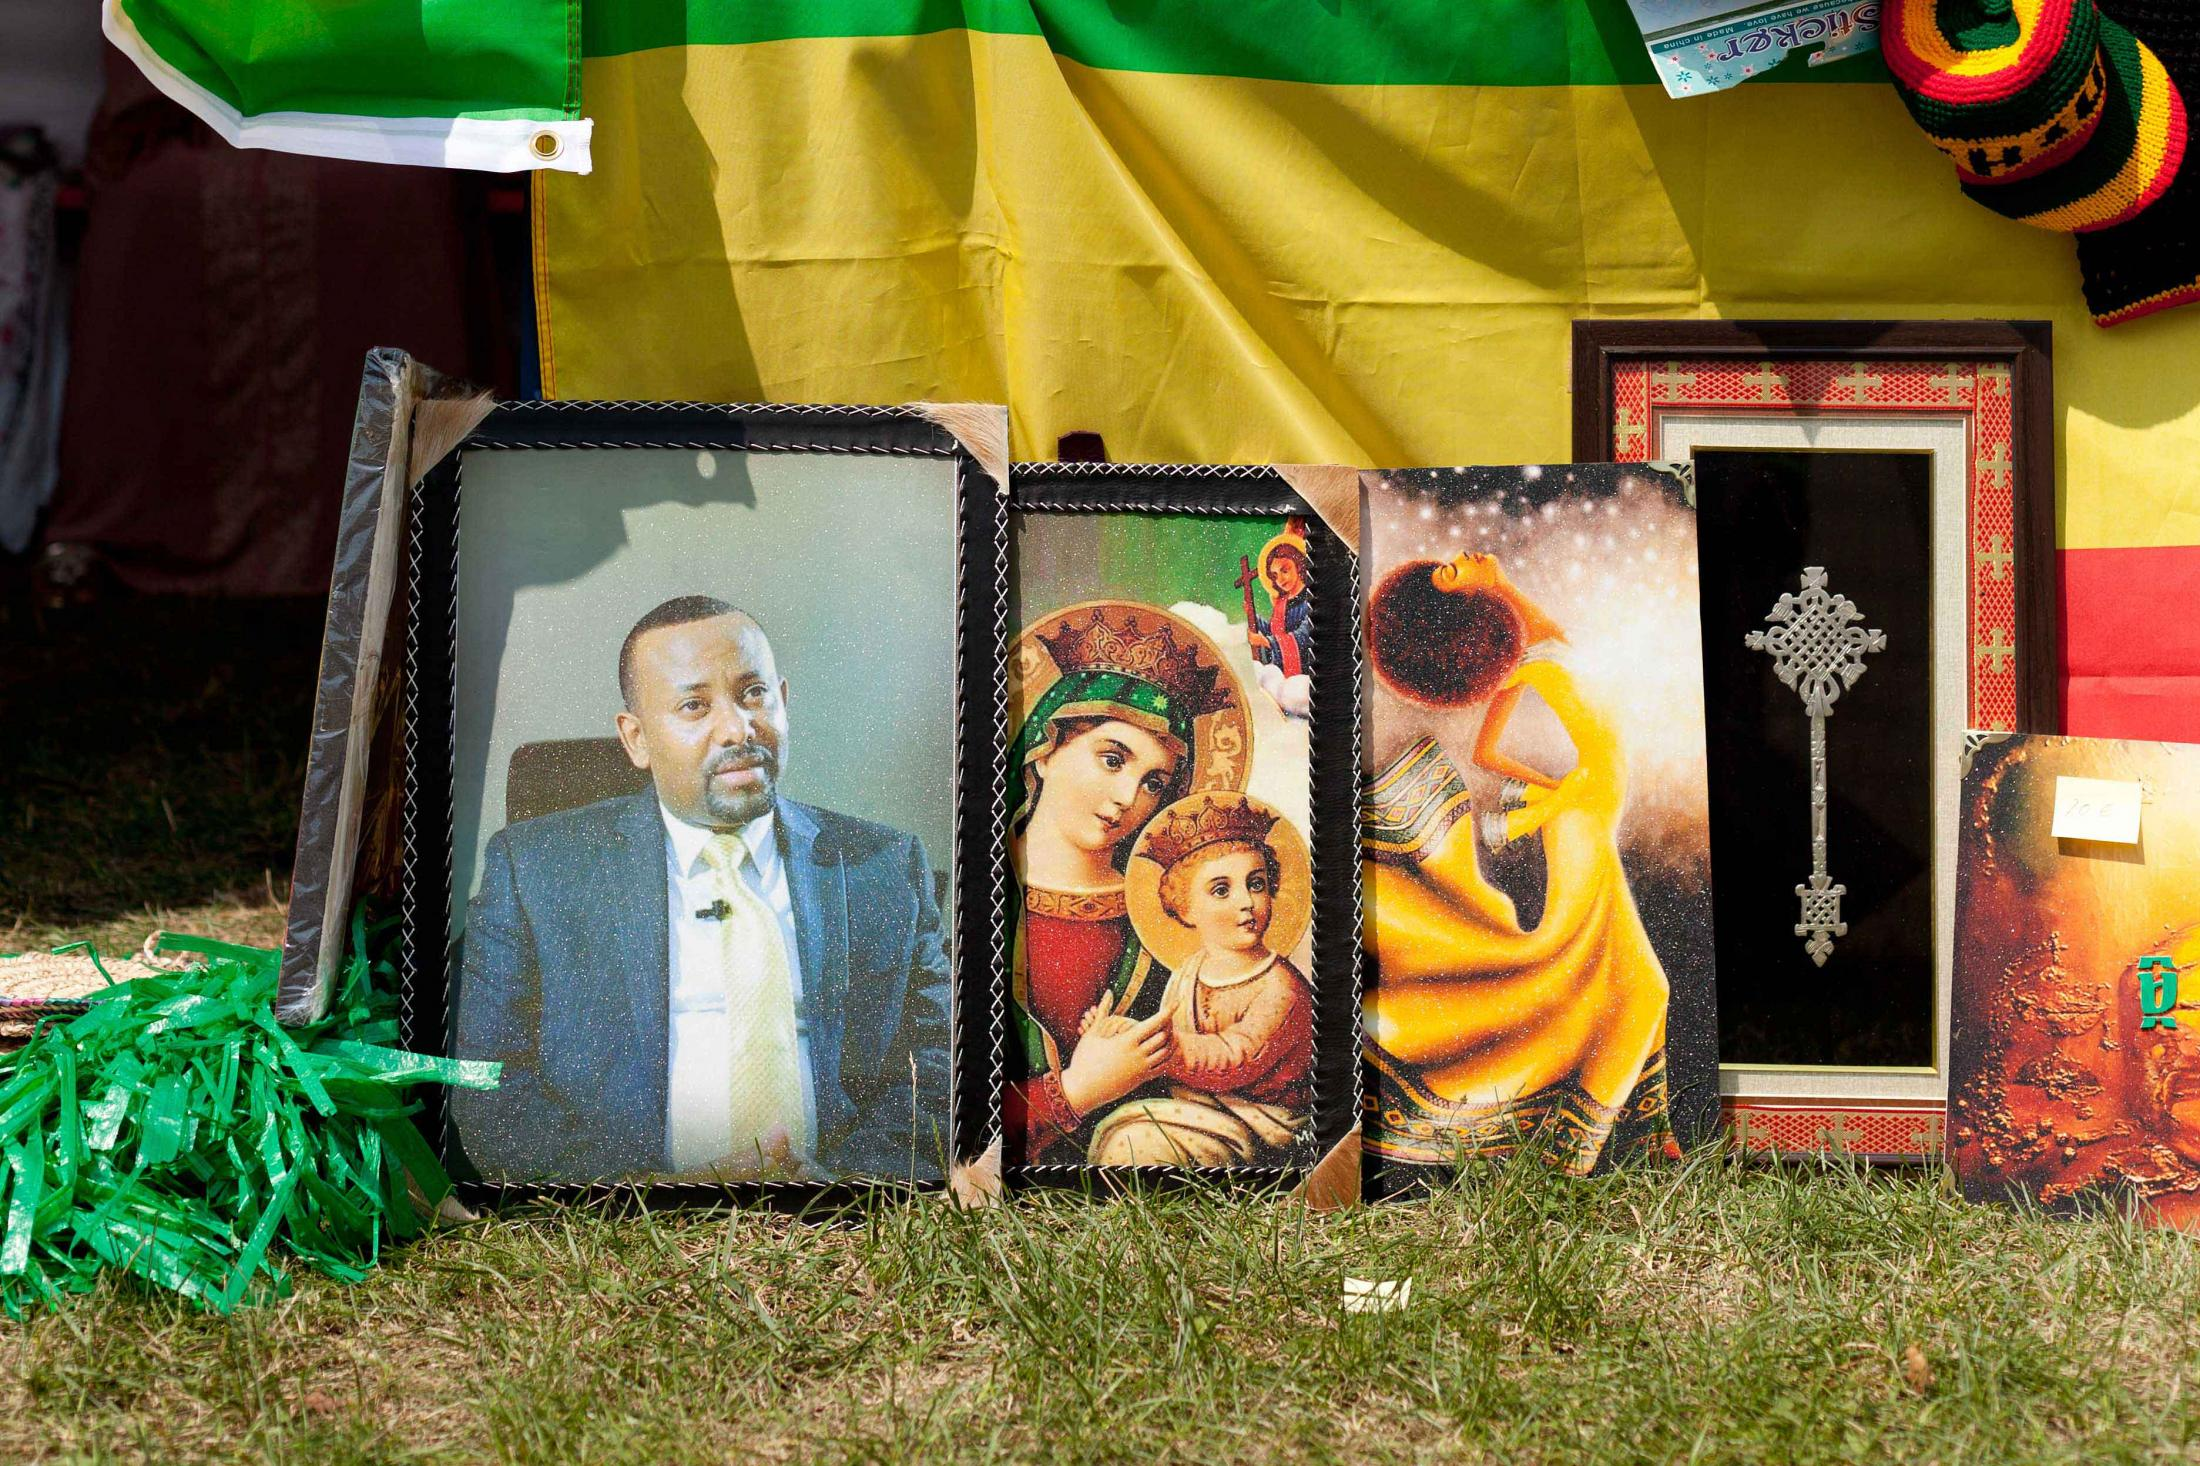 In April 2018, Abiy Ahmed was elected Prime Minister of Ethiopia. On 9 July 2019, he struck a historic peace treaty with Eritrea, ending the 20-year long border conflict between the two nations. Borders opened, families reunited. Hopes were high. But not much has changed for Eritreans. There is no debate over the indefinite nature of the national service, and the country remains a totalitarian regime, with repression, no free press, torture, disappearances.